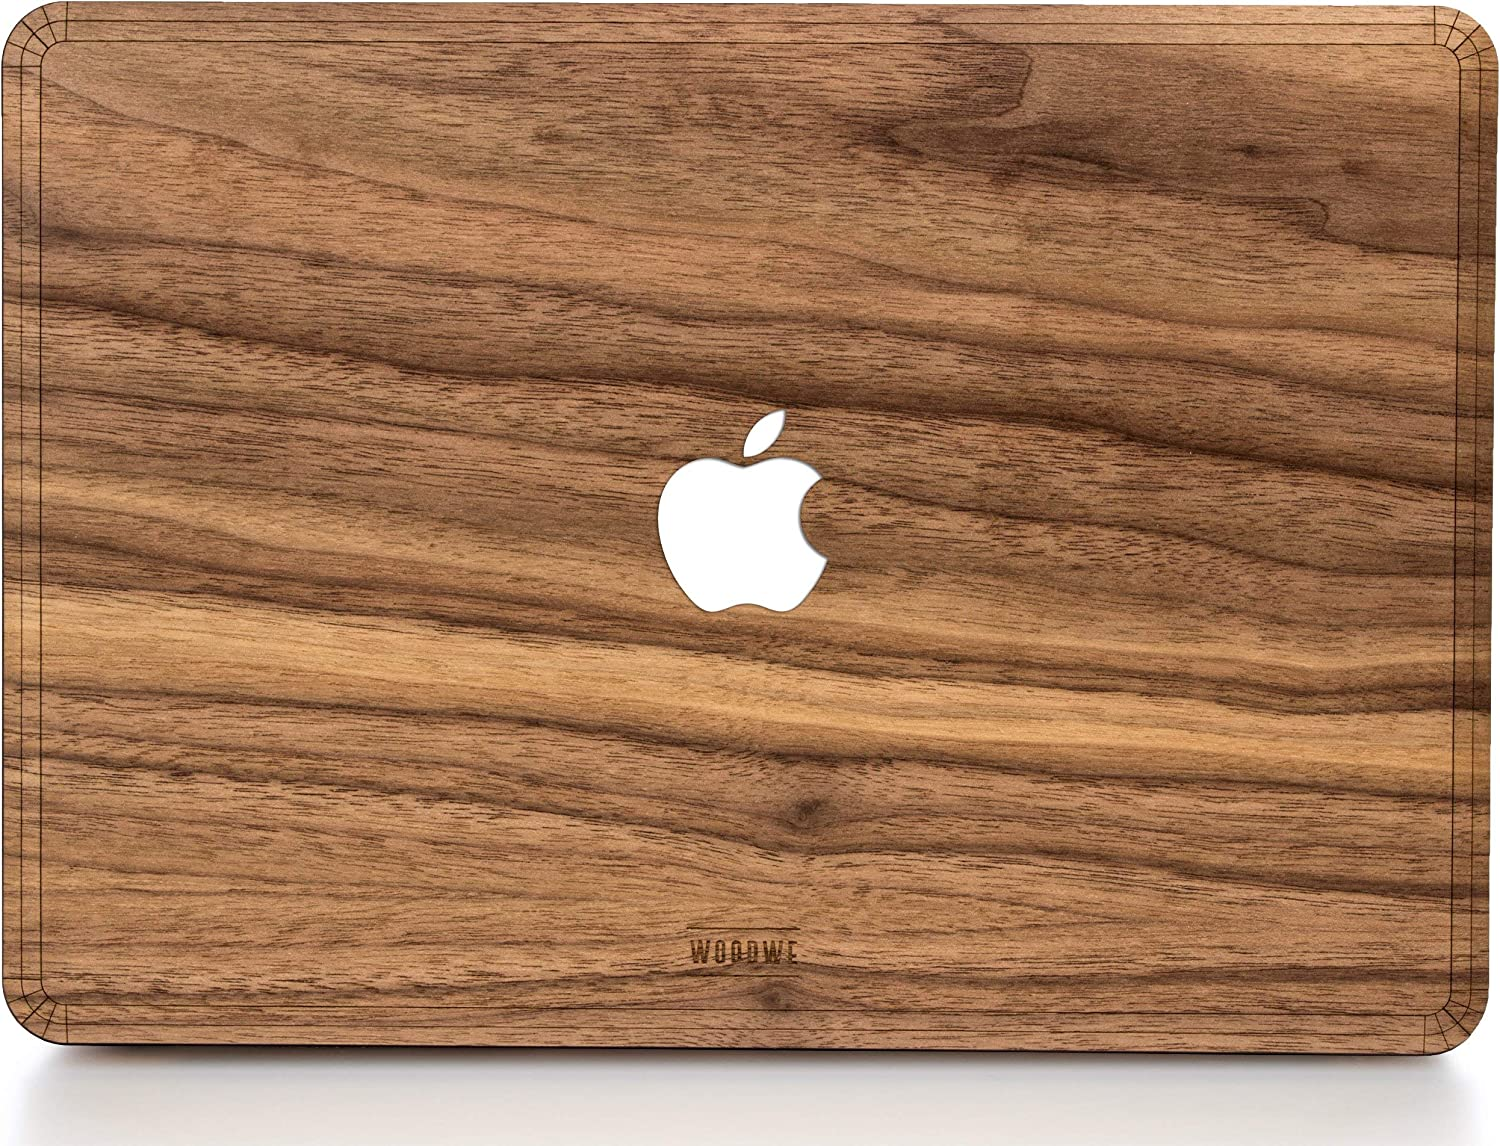 WOODWE MacBook Cover Made of Real Wood | for Mac Pro 15 inch with Touch ID/Bar/Thunderbolt | Late 2016 – Mid 2018 | Natural Walnut Wood